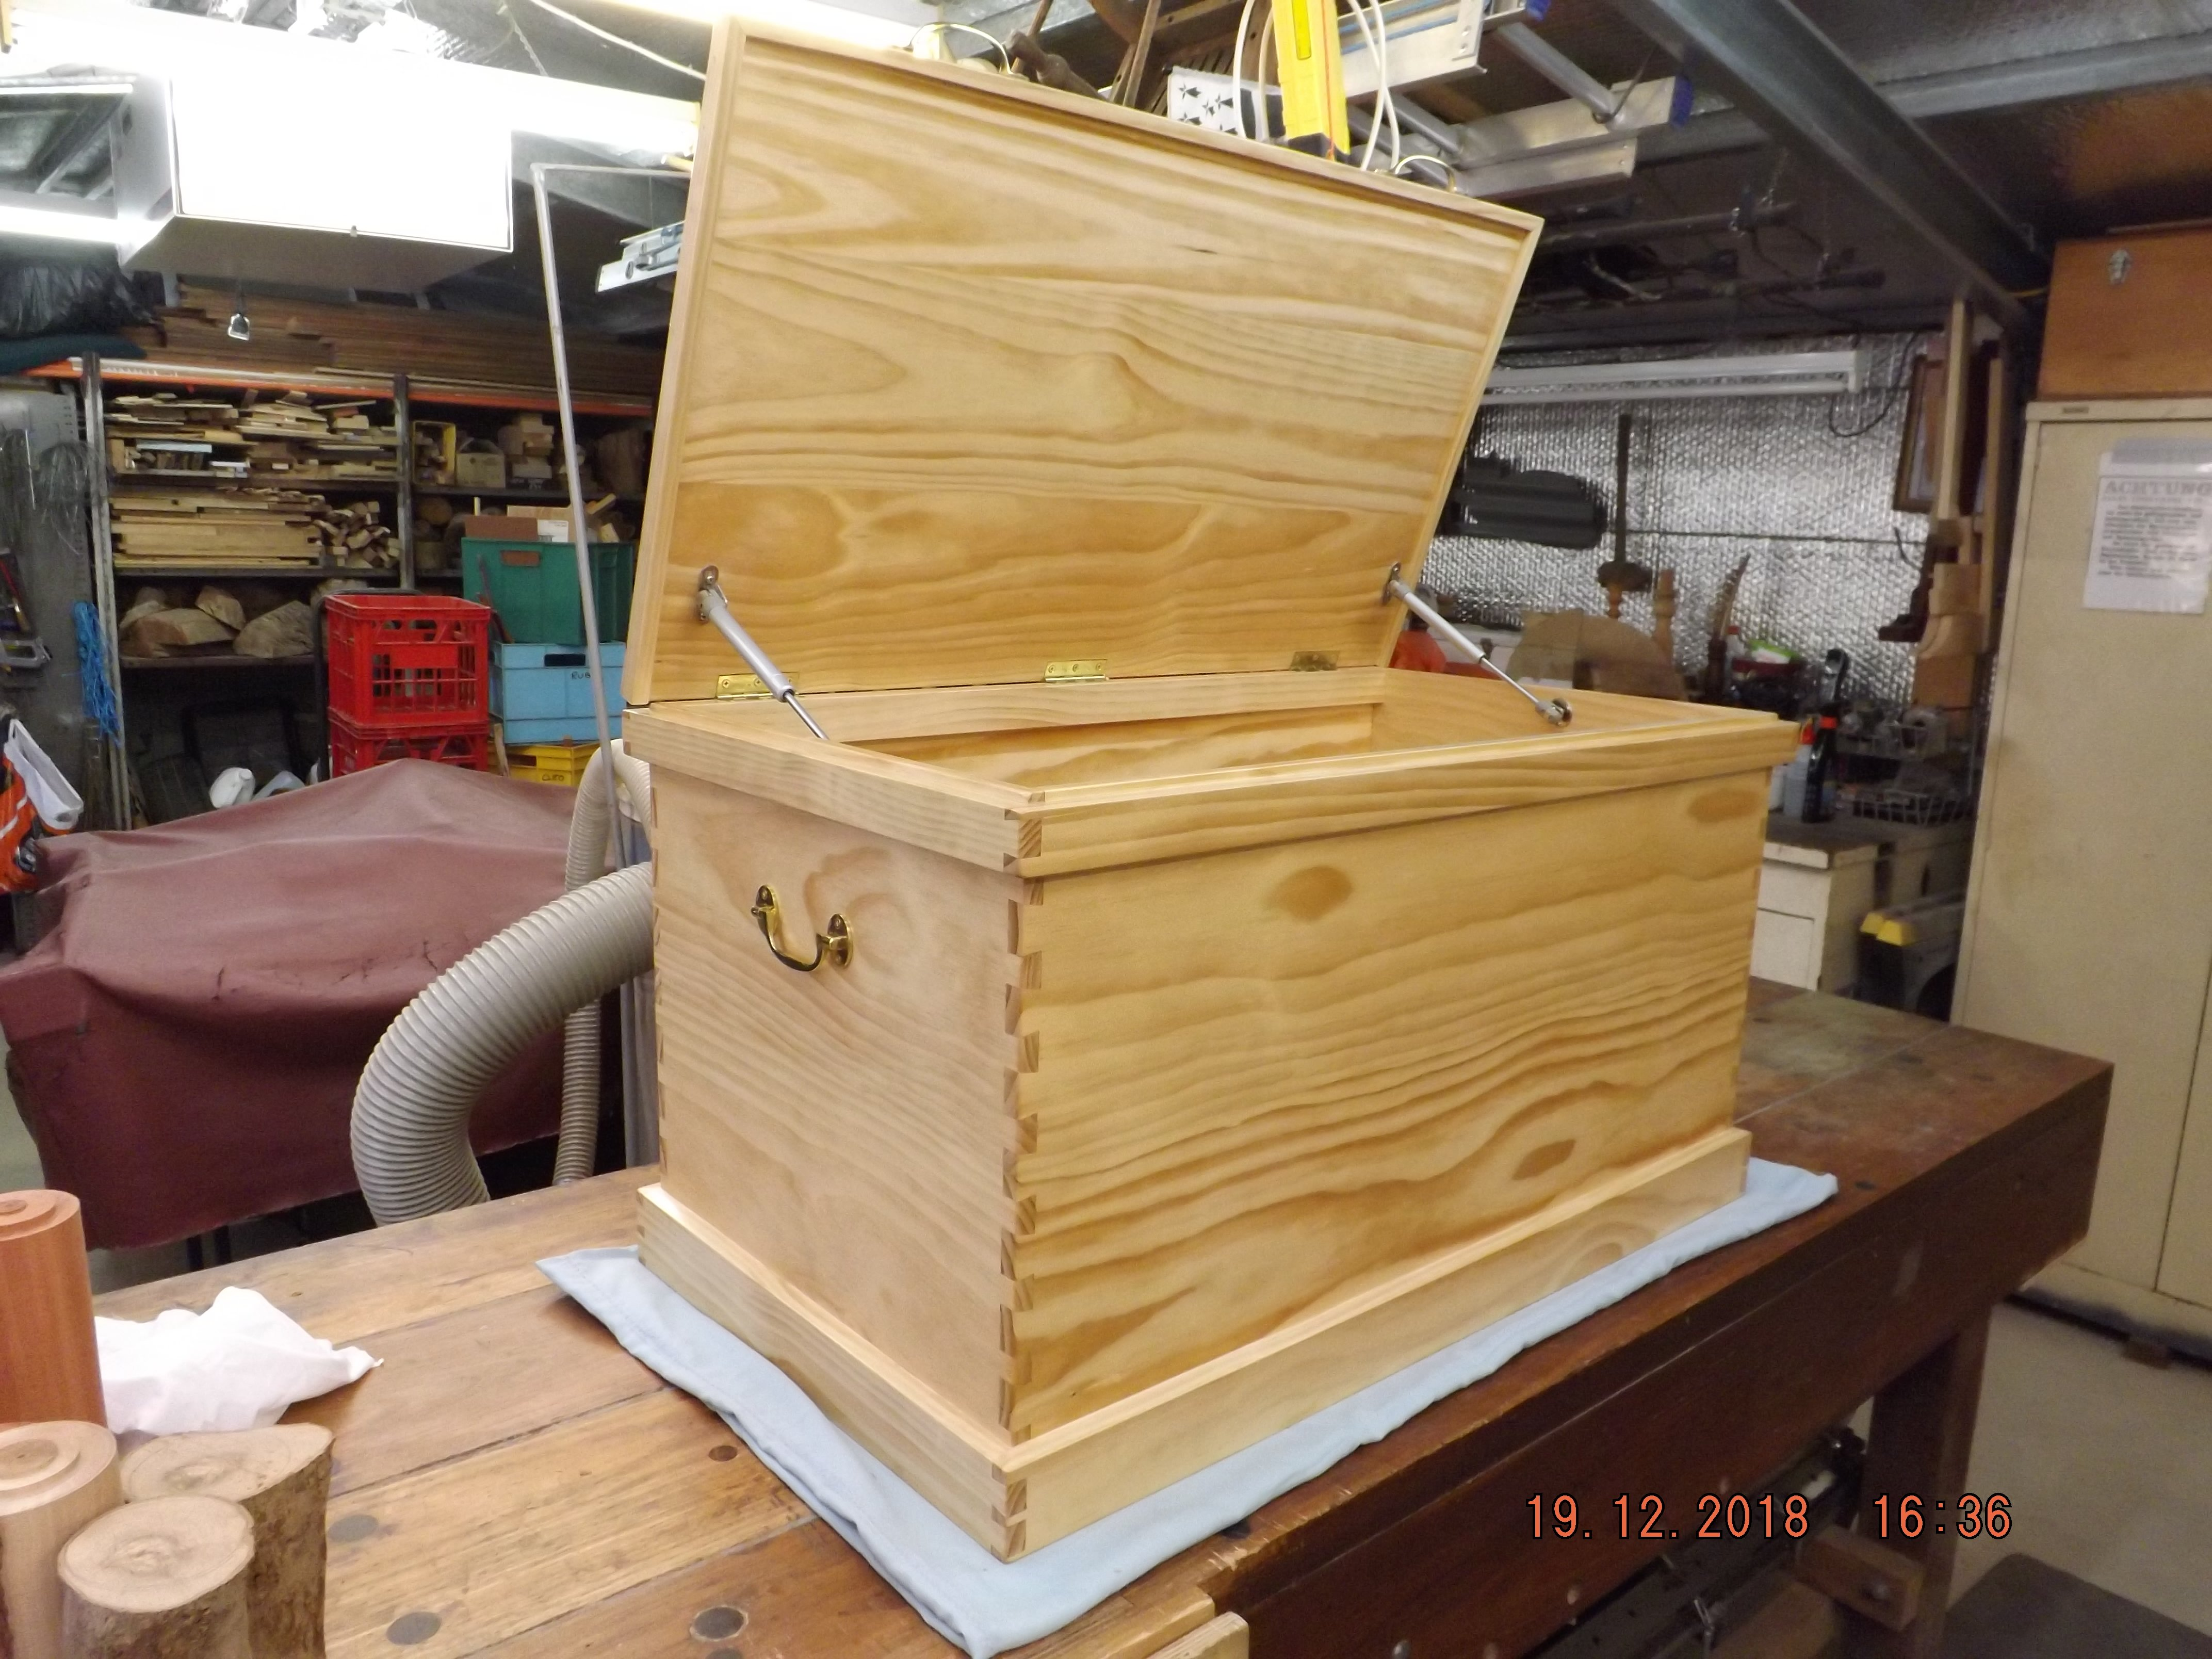 Joiner's Tool Box by Mick Adley